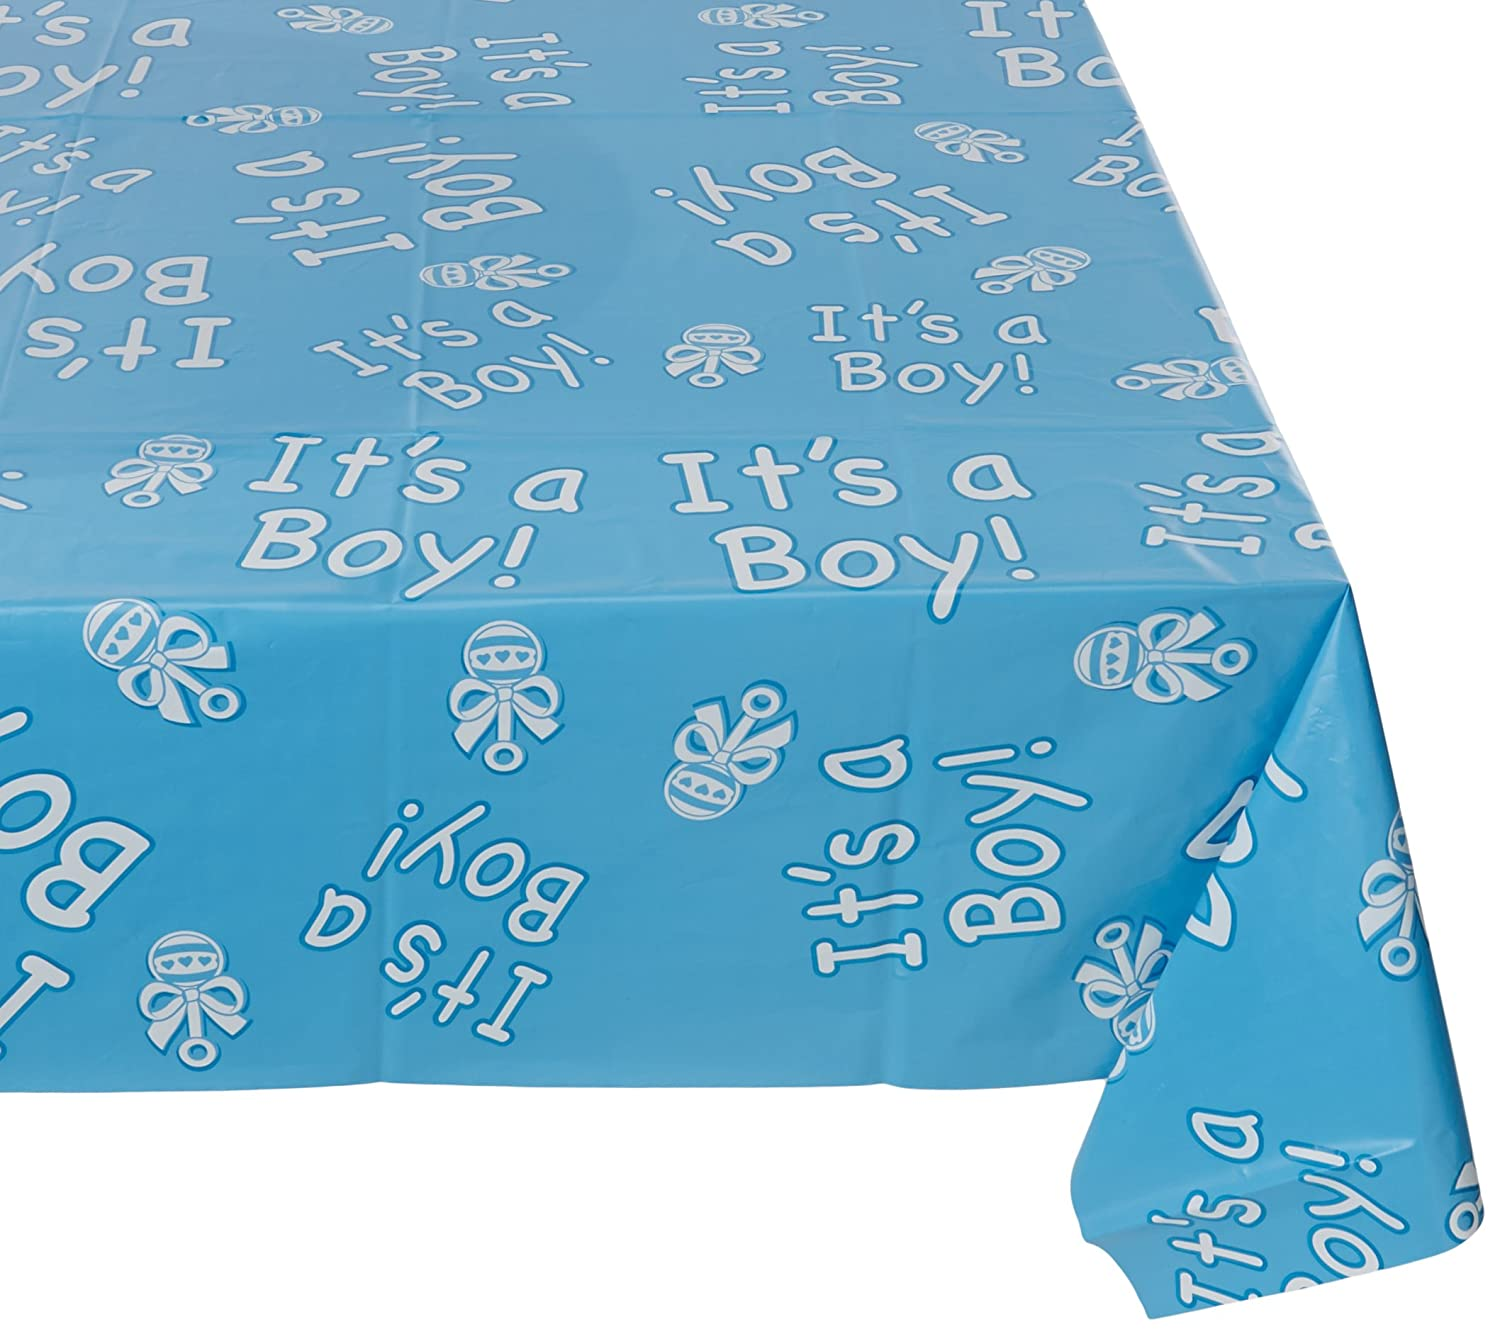 Beistle 57384 It's a Boy! Table Cover, 54-Inch by 108-Inch The Beistle Company